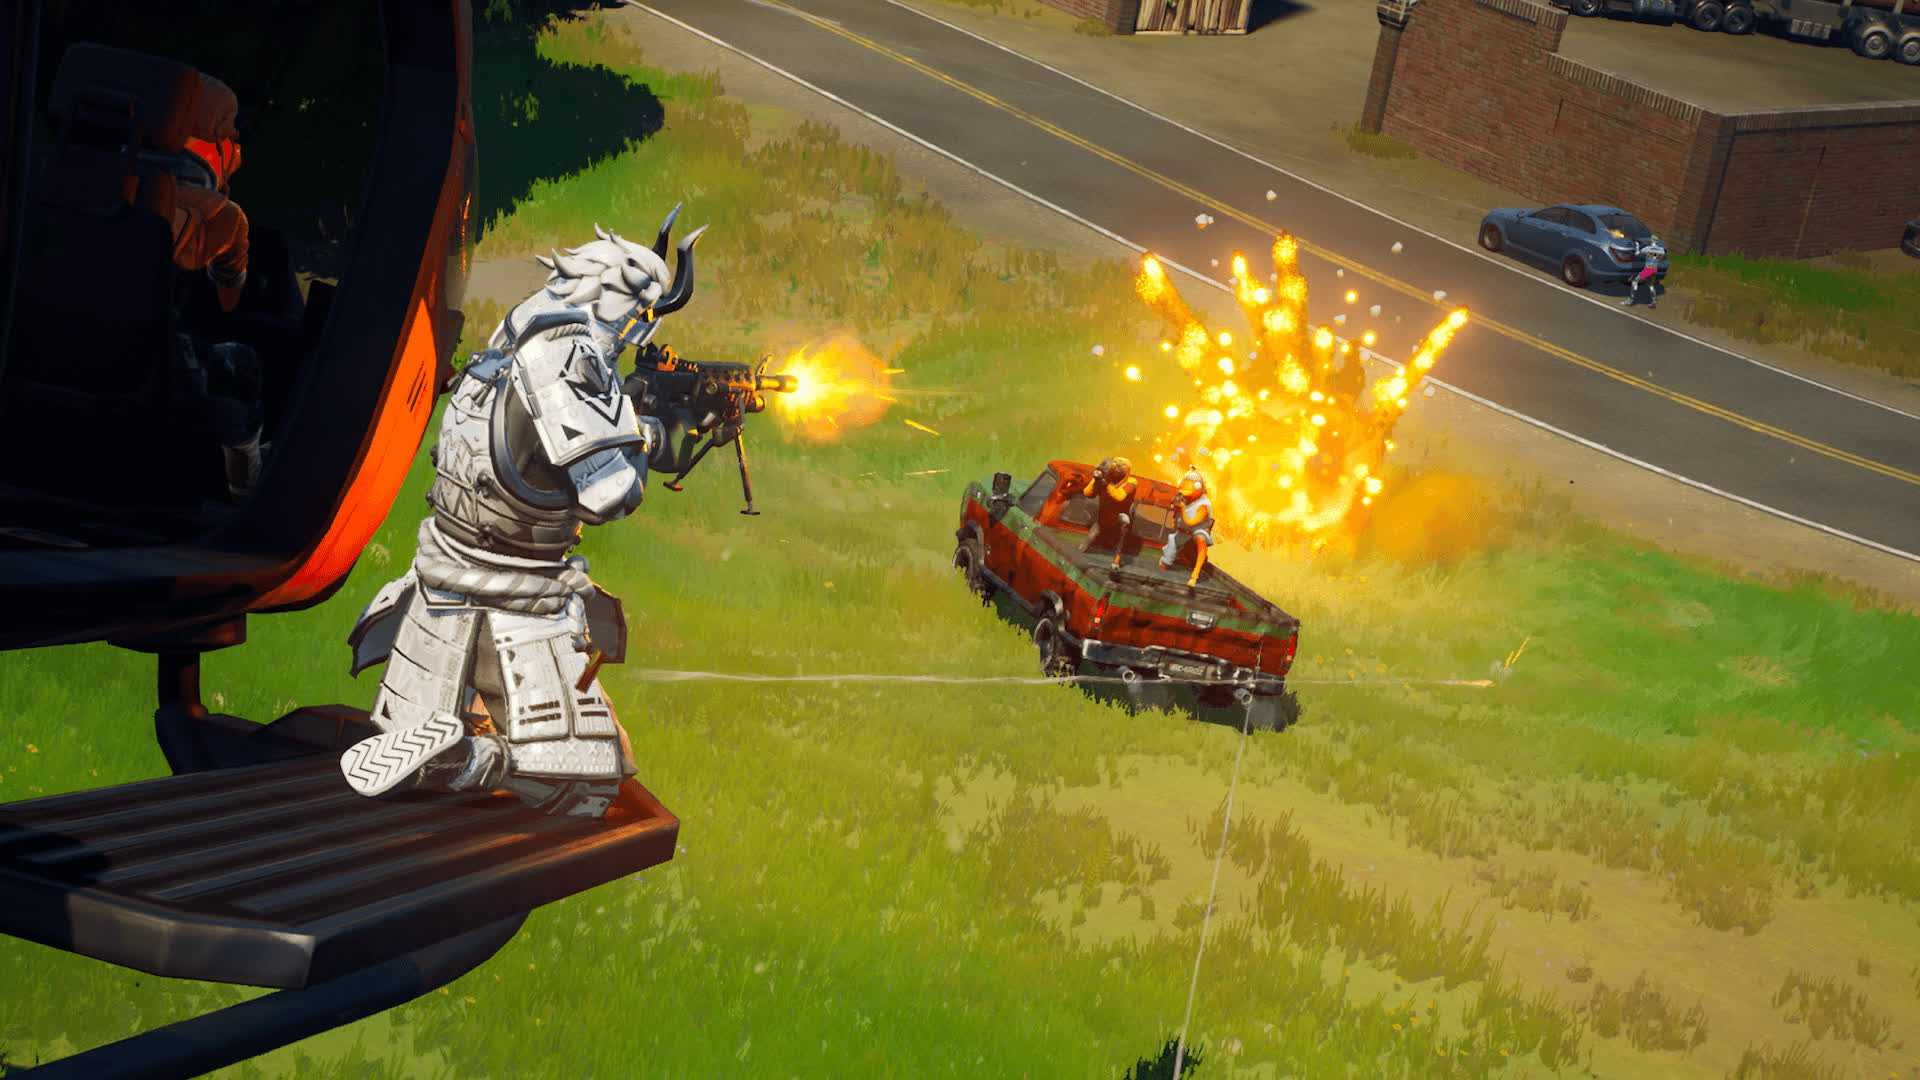 Fortnite is about to get a major visual upgrade on PC